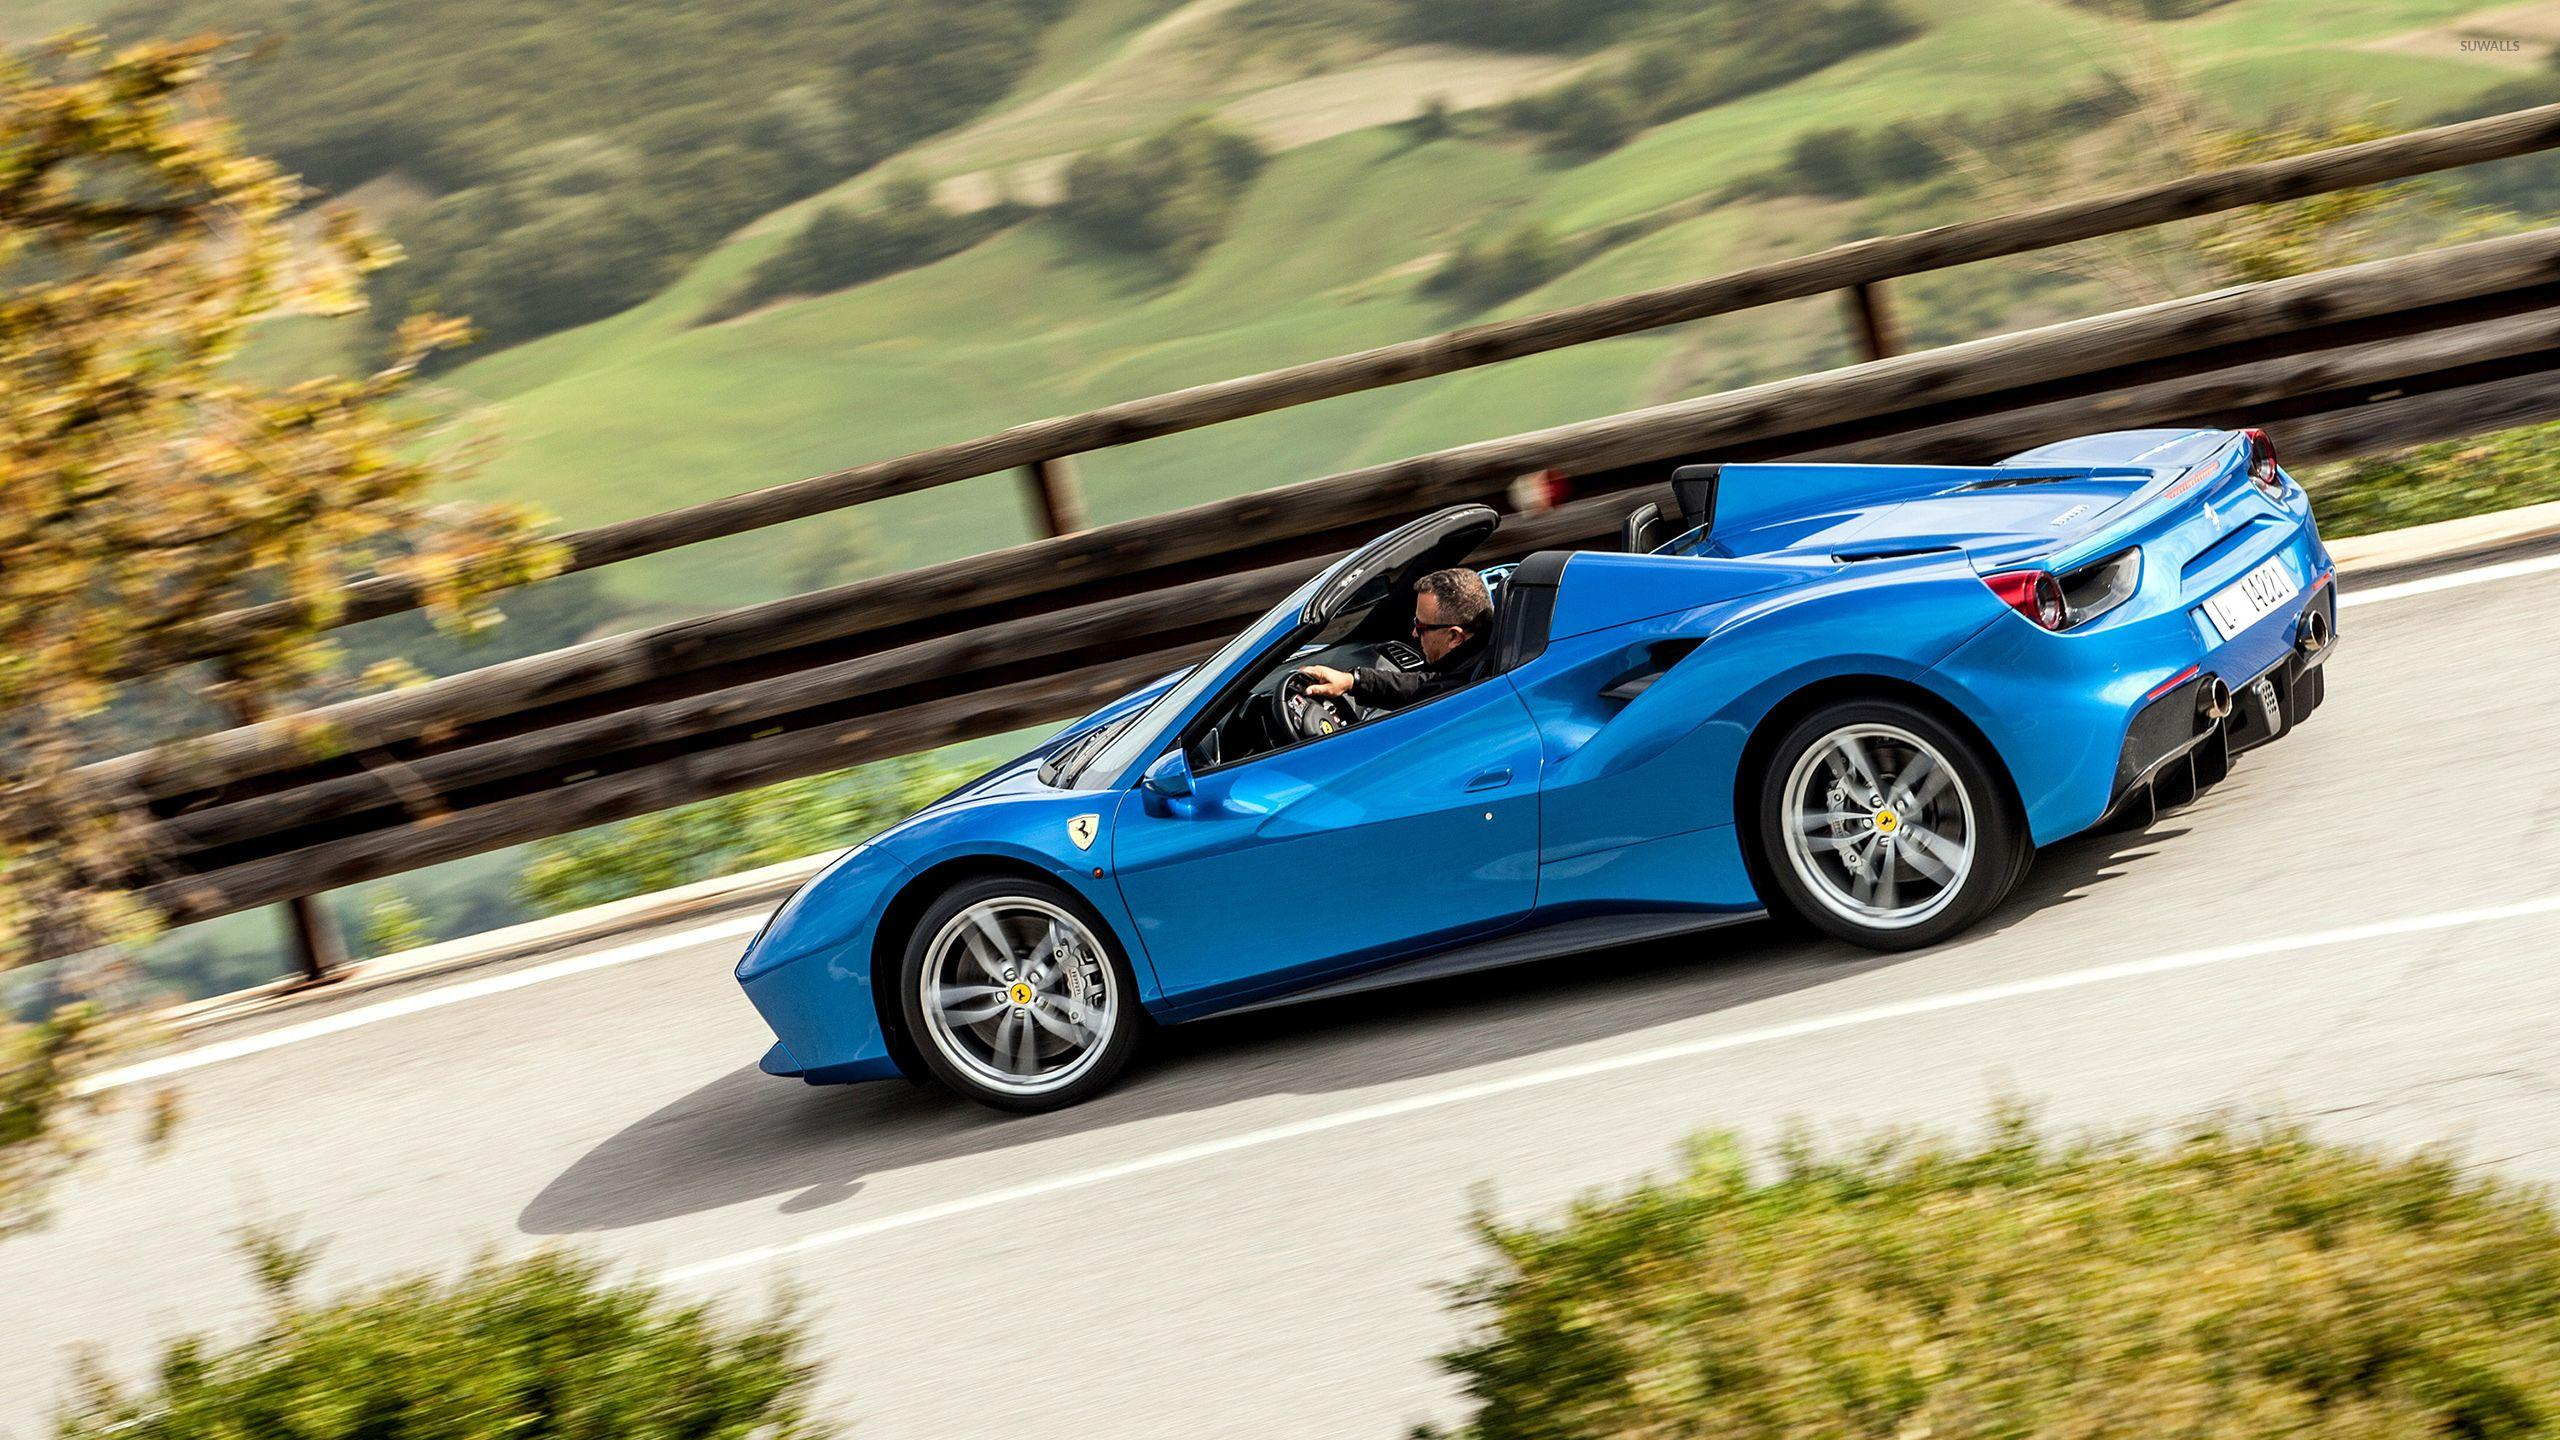 Blue Ferrari 488 Spider on the road wallpapers